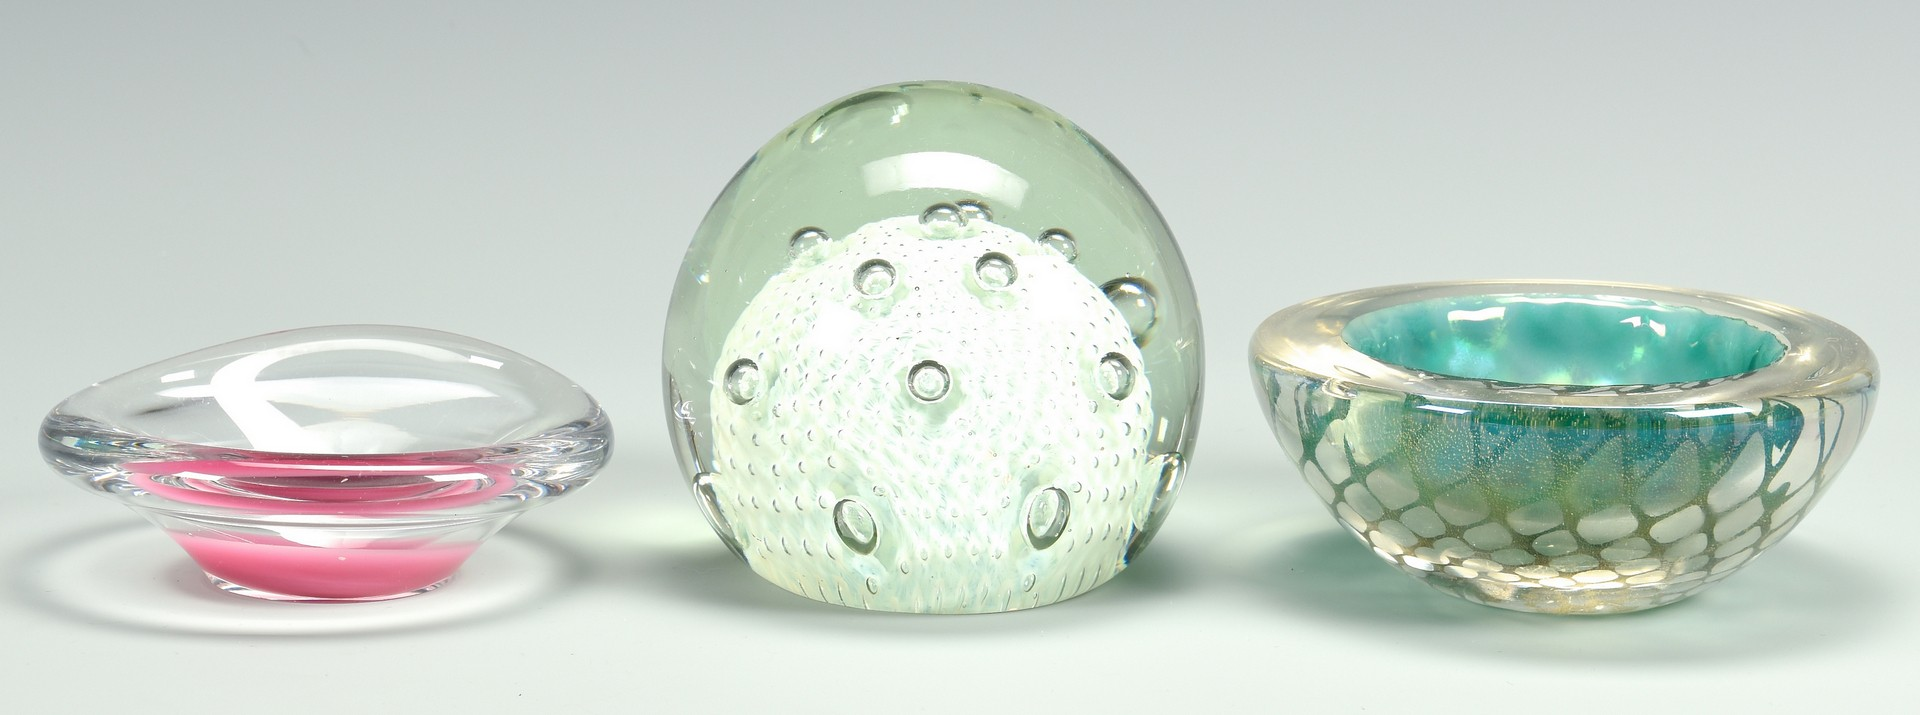 Lot 736: Group of Art Glass Items, incl. Paperweights, 7 pc